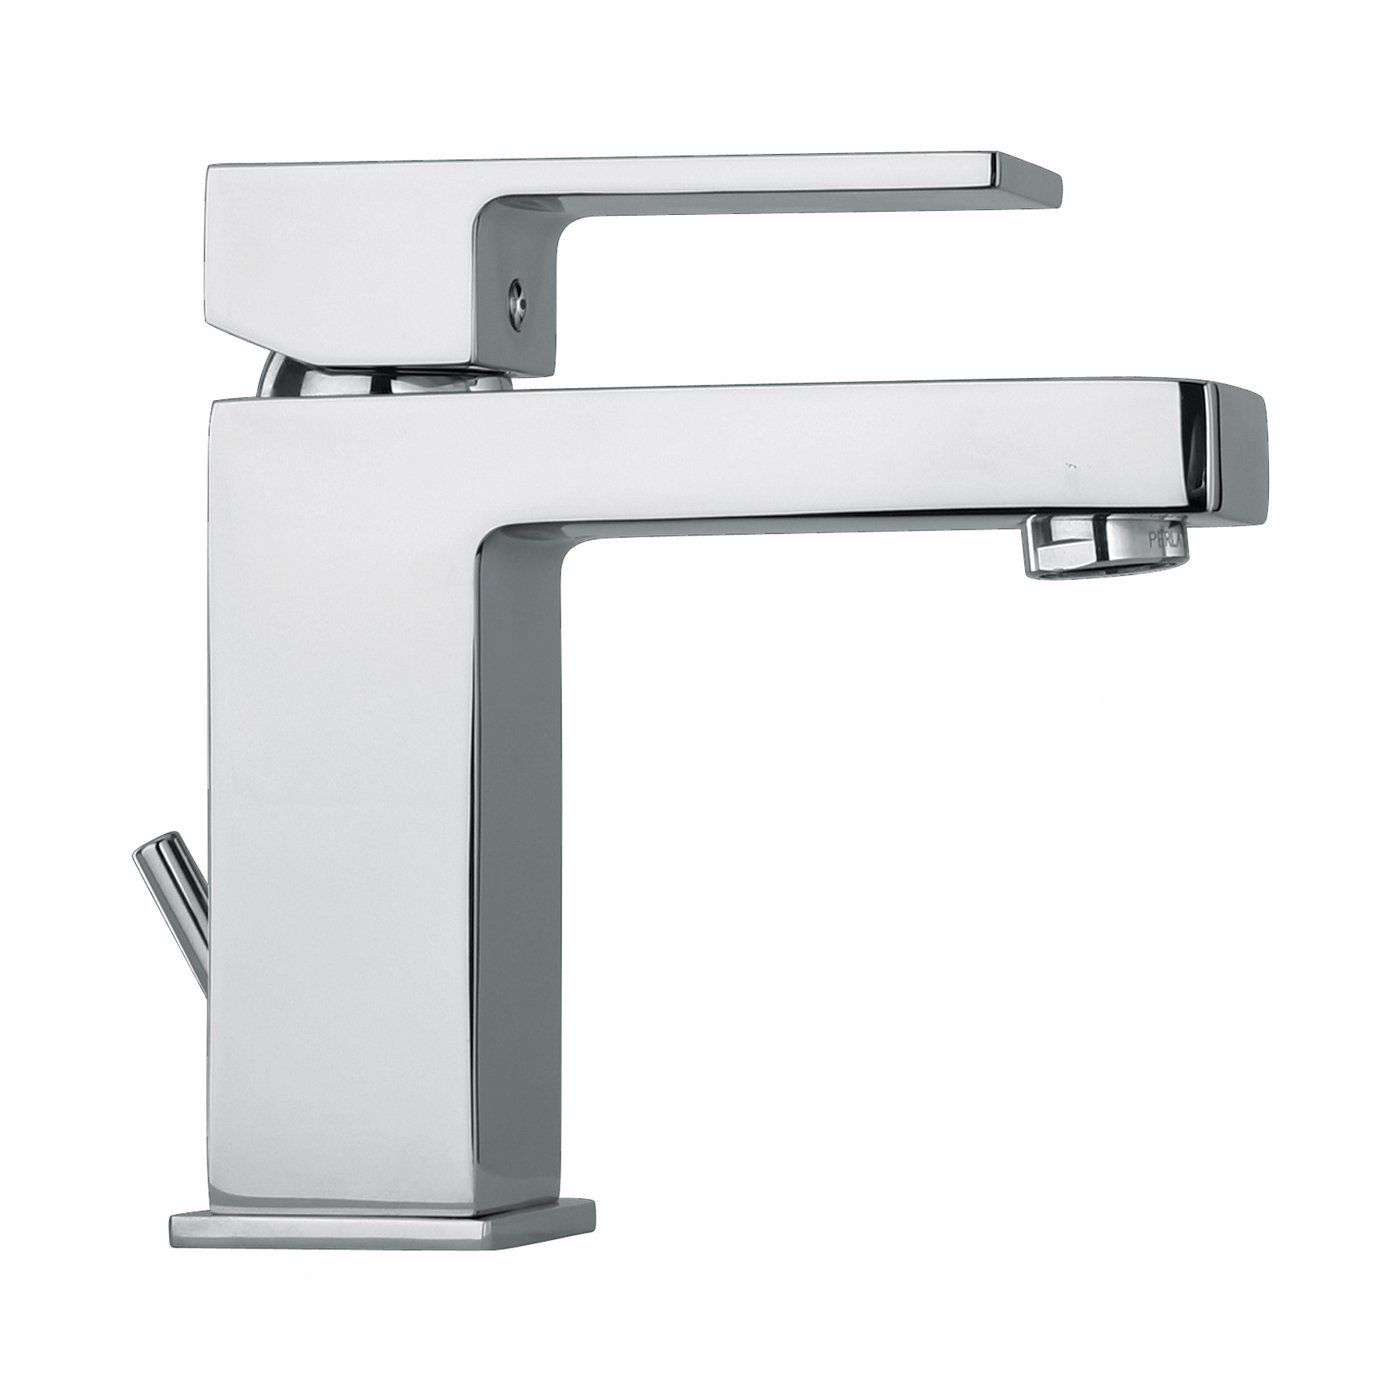 Shop Jewel Plumbing Products Jewel Faucets 12211 J12 Bath Series ...